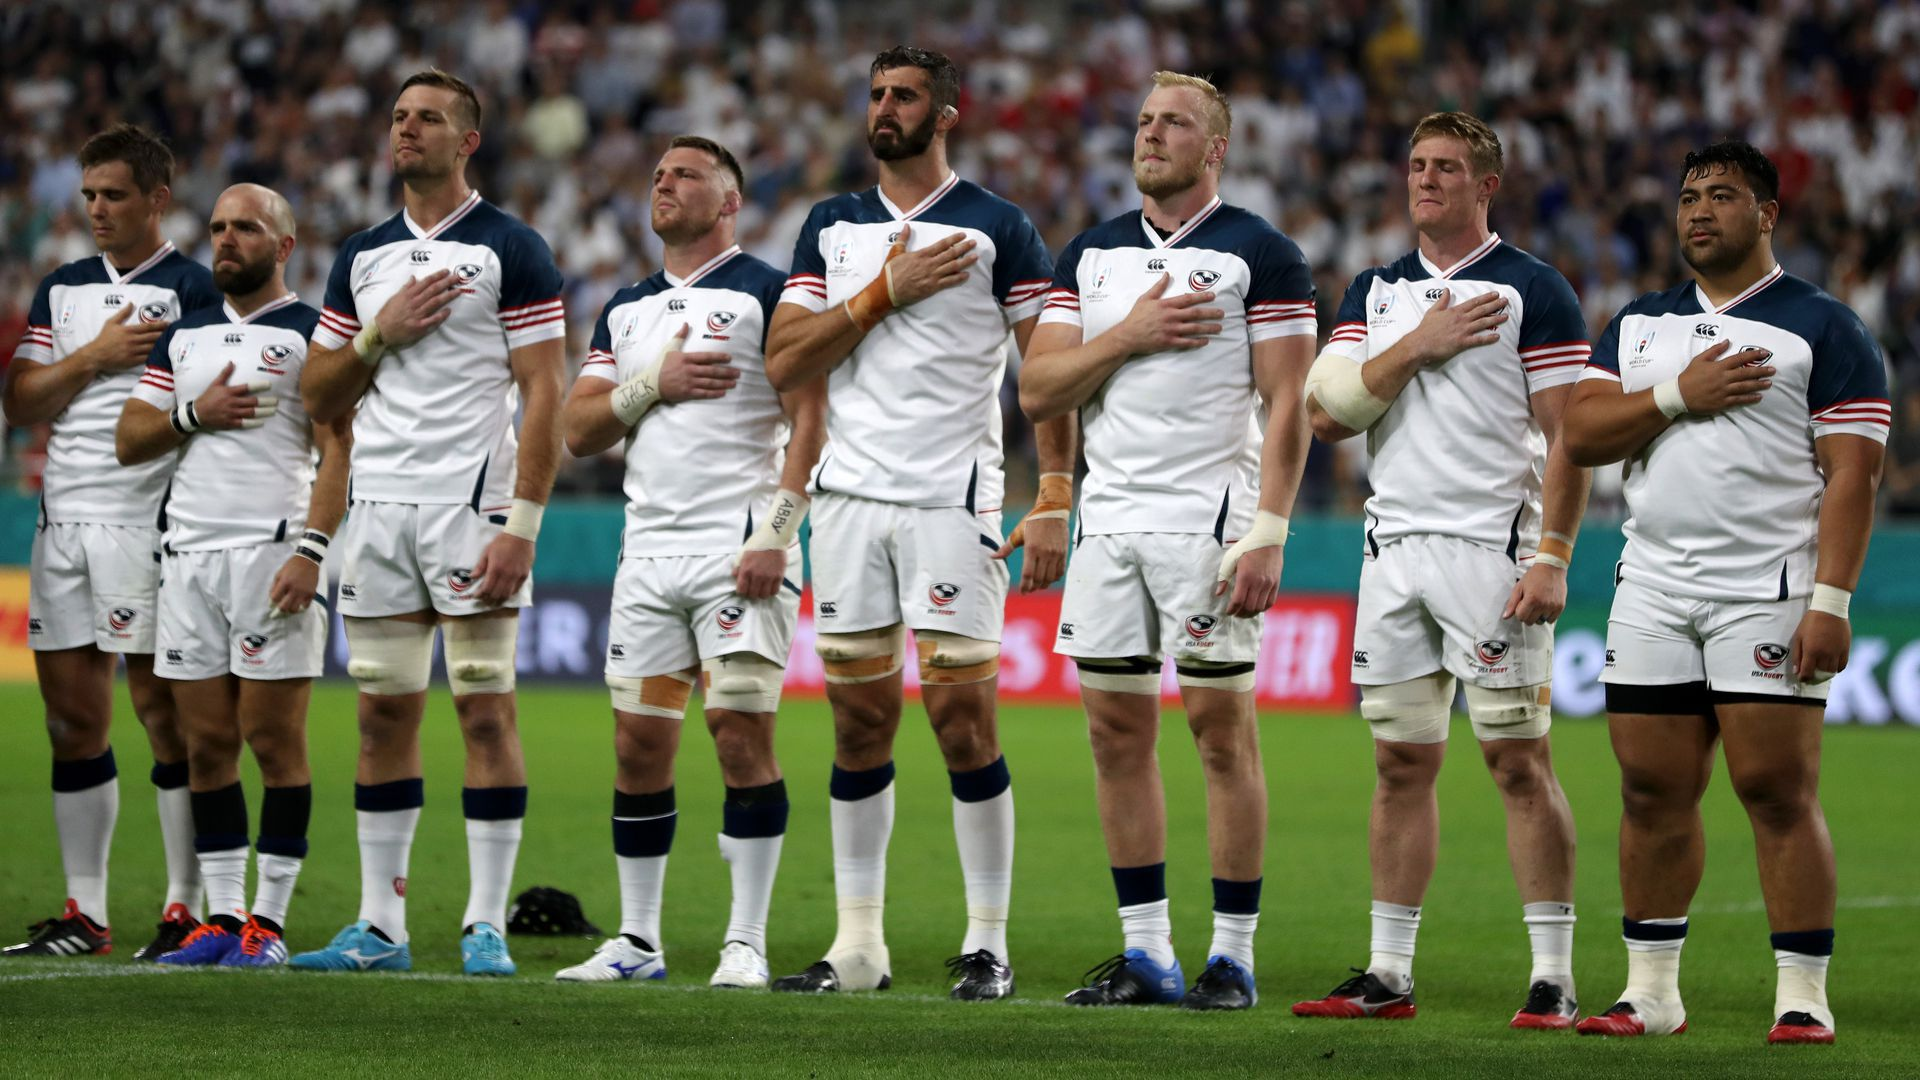 The U.S. rugby team.